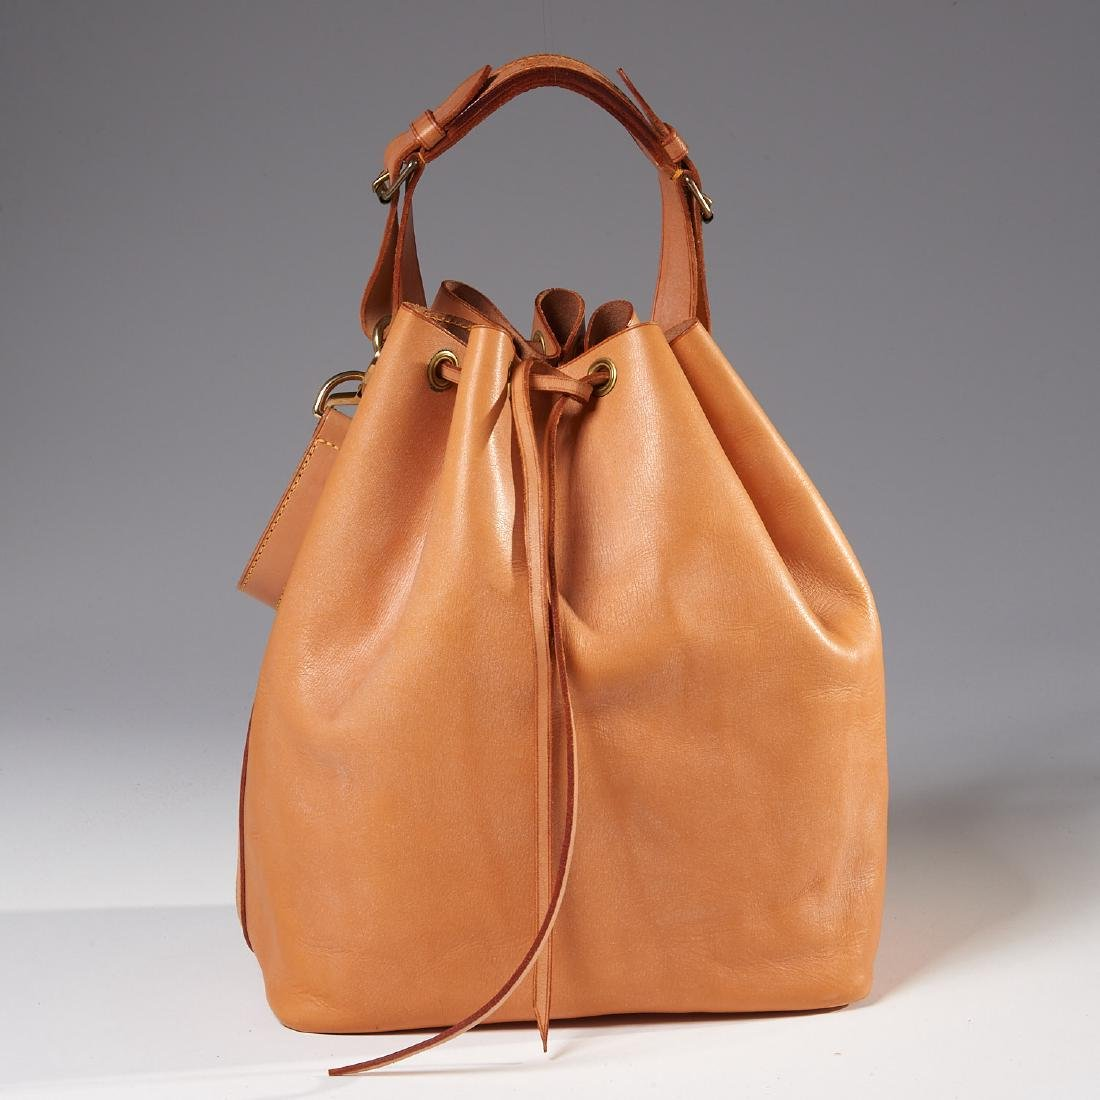 Louis Vuitton all leather drawstring handbag